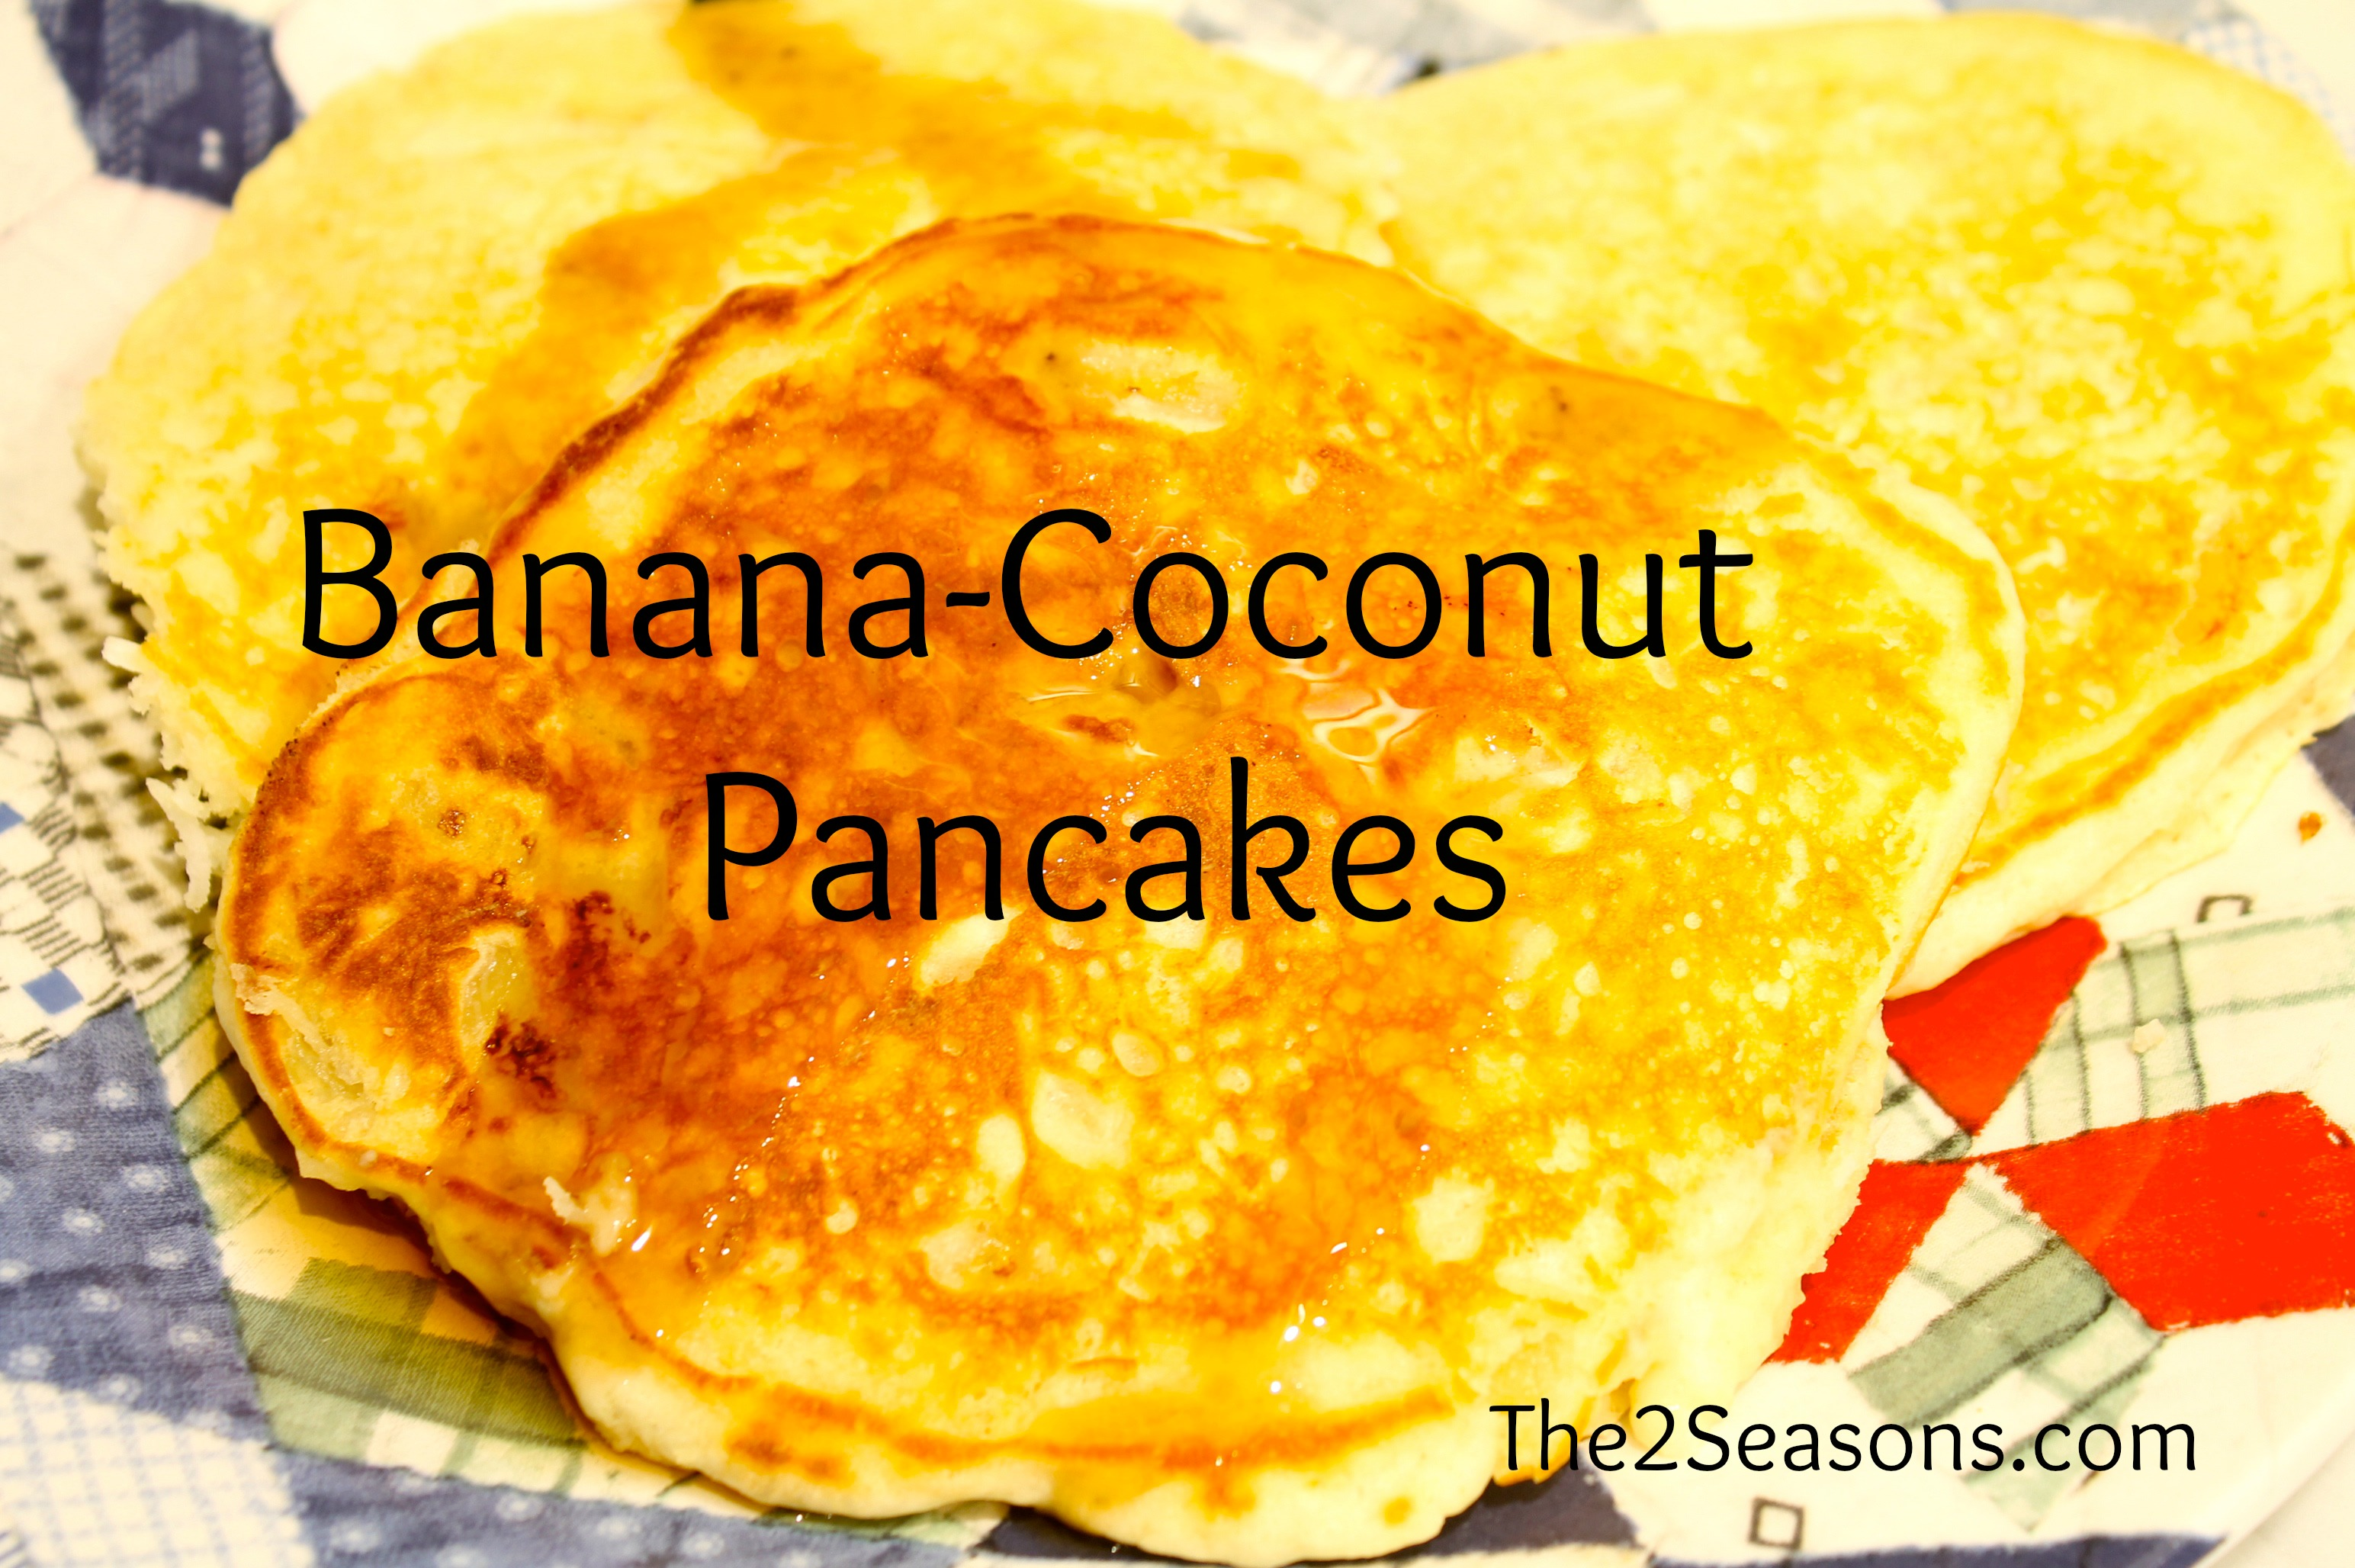 Banana Coconut Pancakes - Pancakes From Scratch